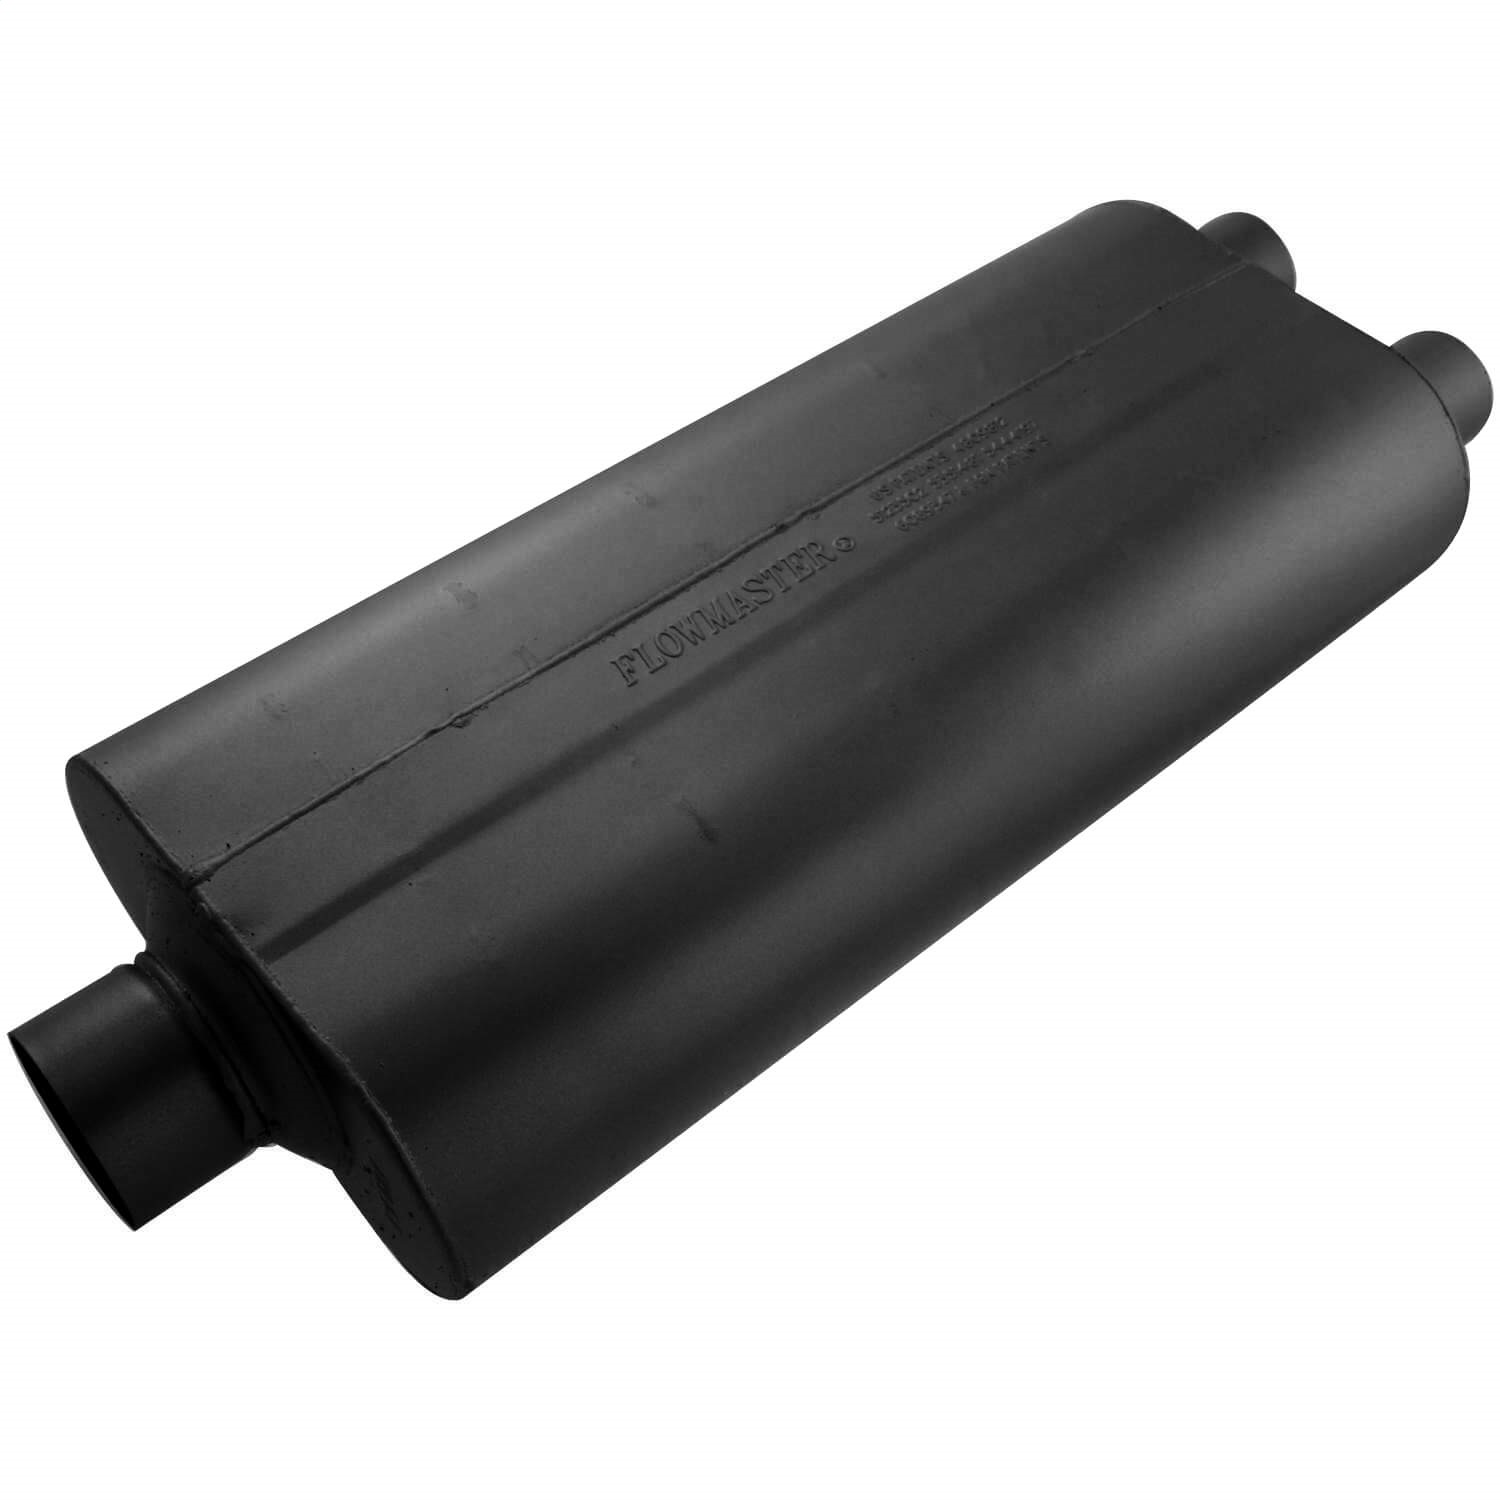 3.00 Center IN Flowmaster 530722 70 Series Muffler Mild Sound 2.25 Dual OUT